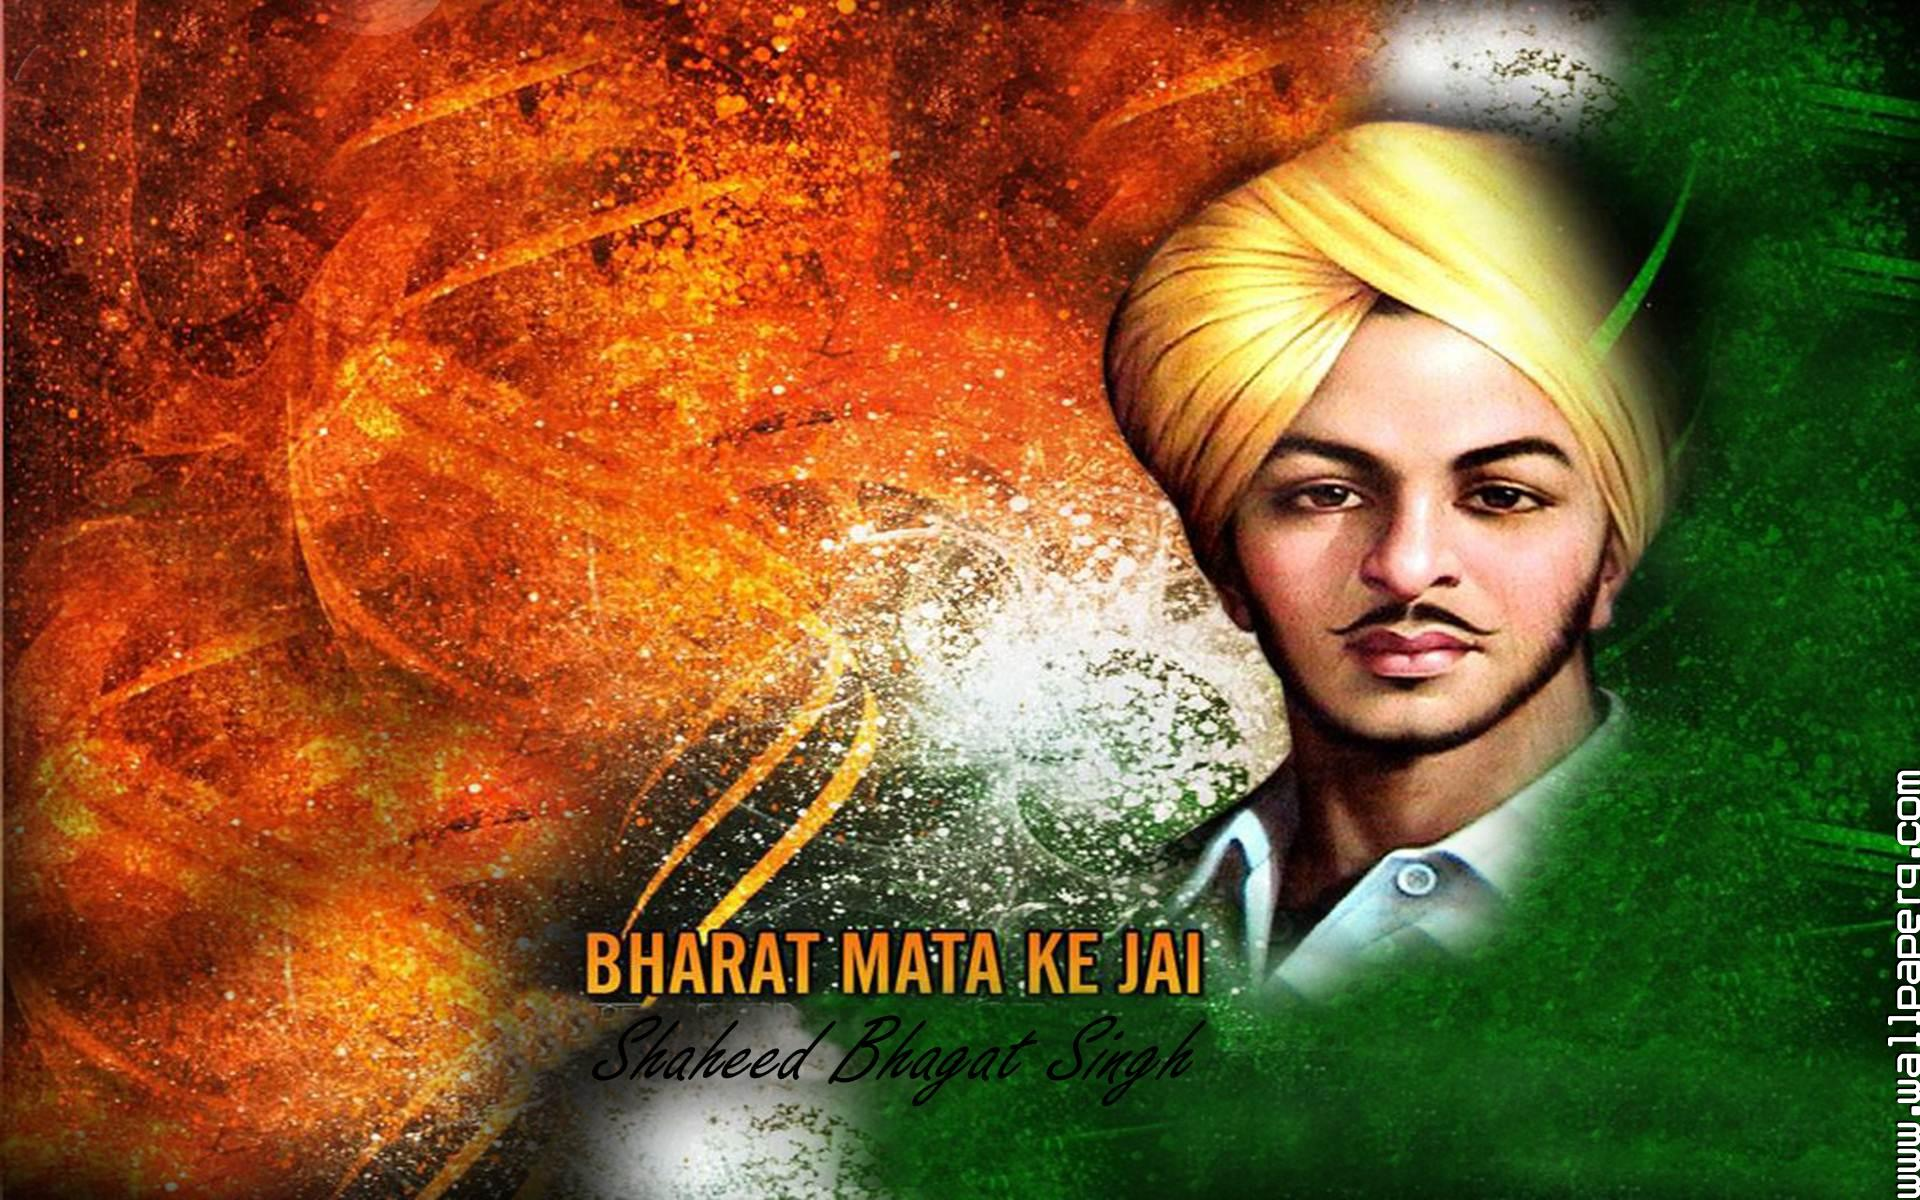 Download Shaheed Bhagat Singh Greetings For Republic Day Republic